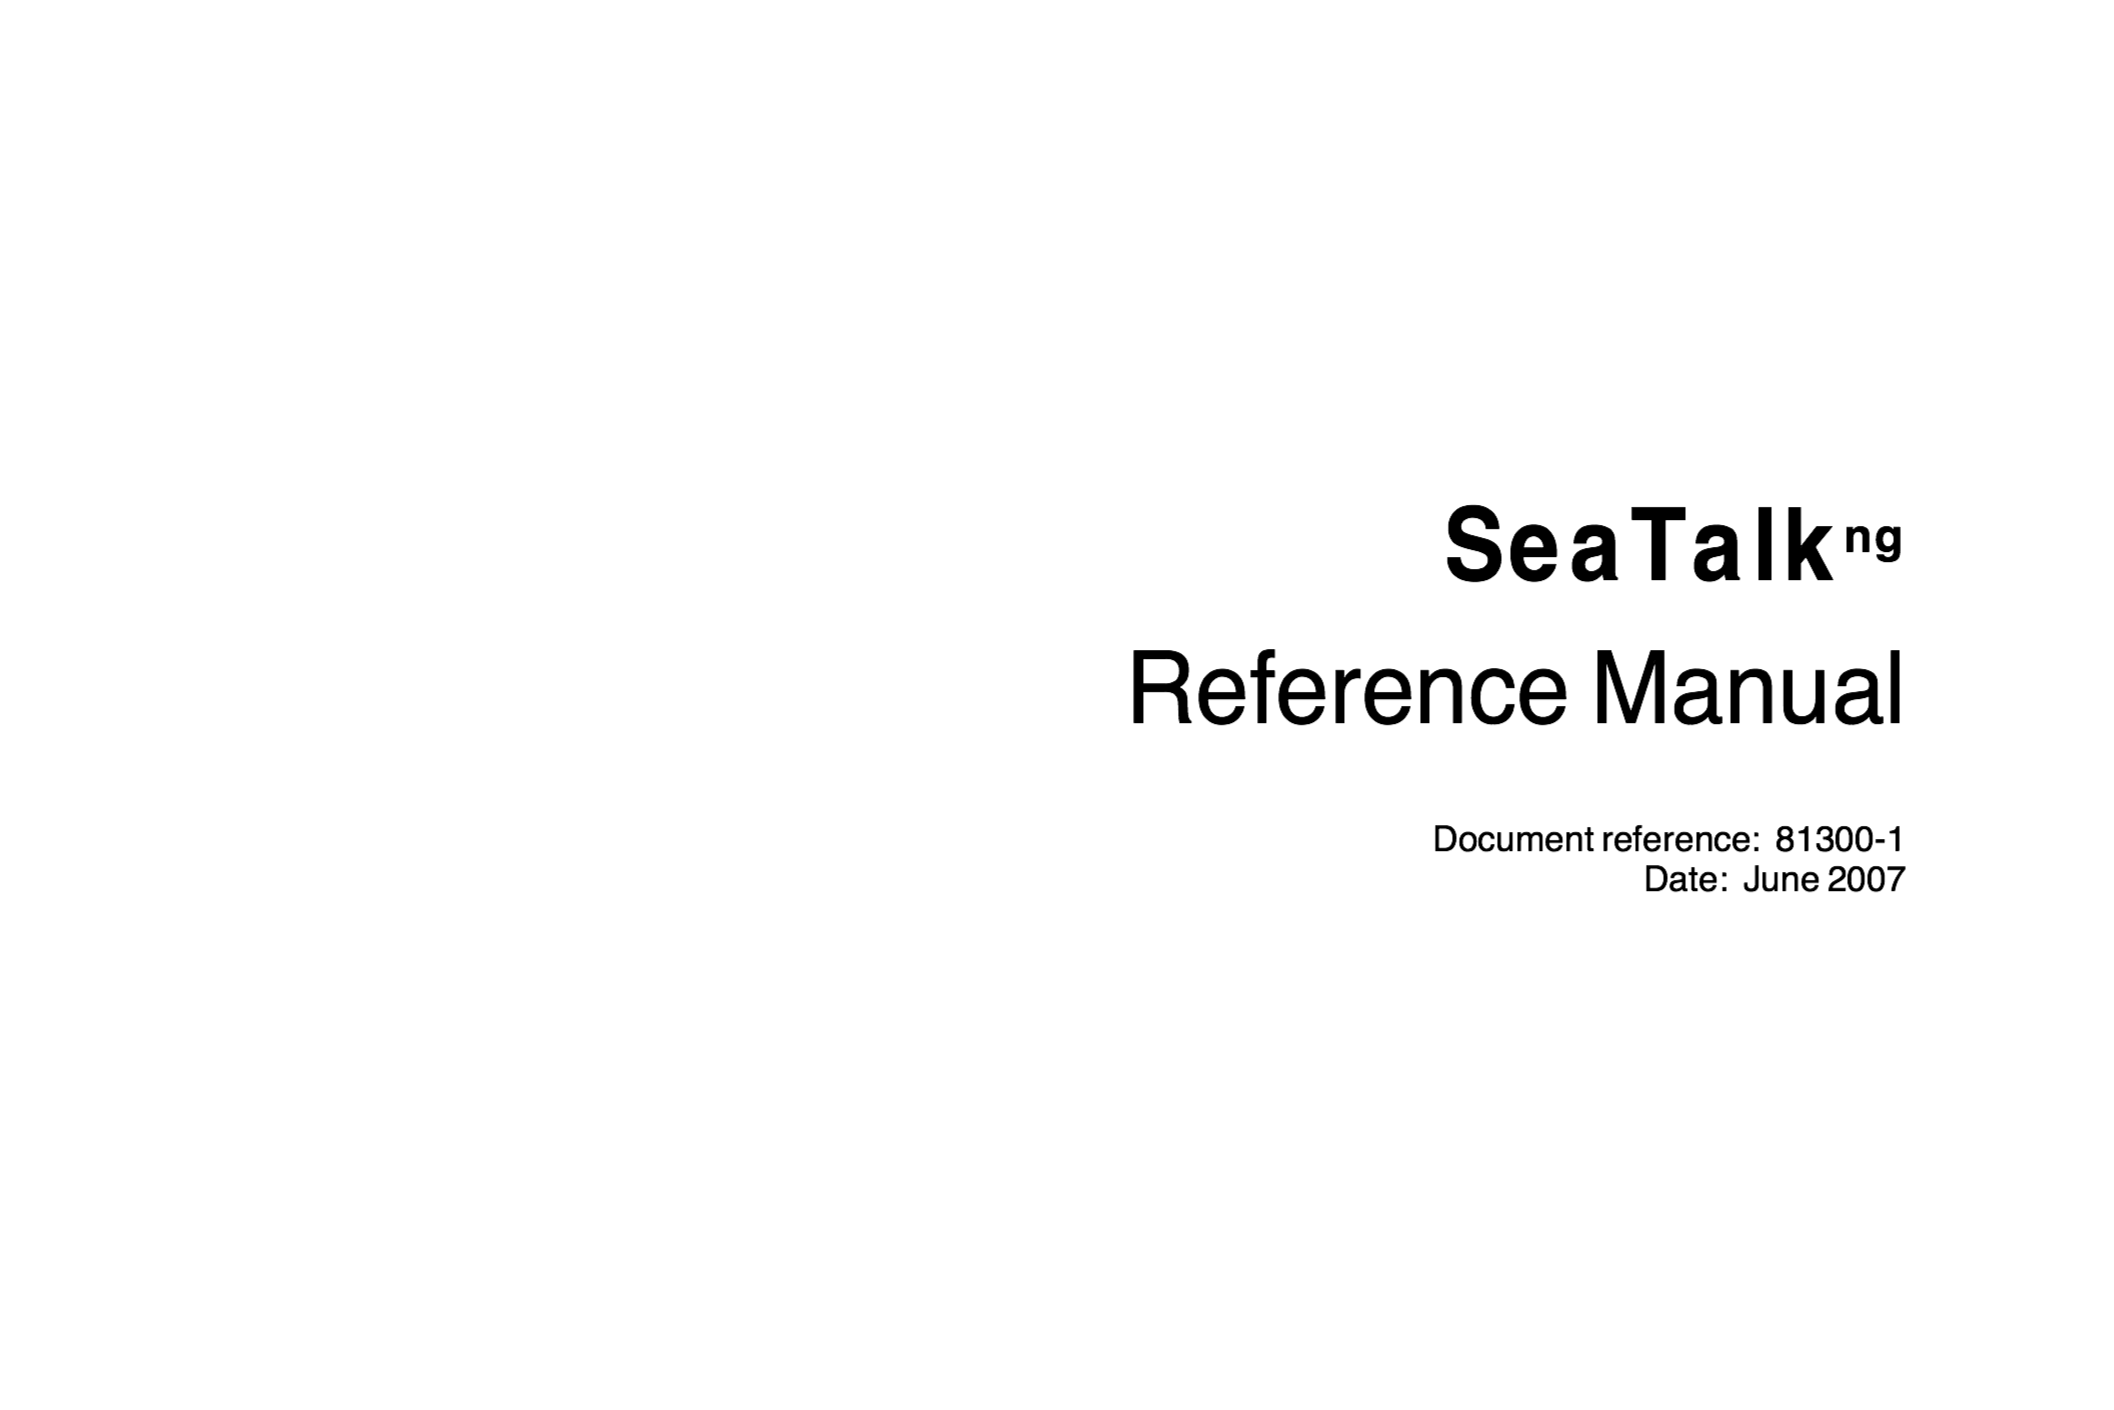 raymarine seatalk ng reference manual